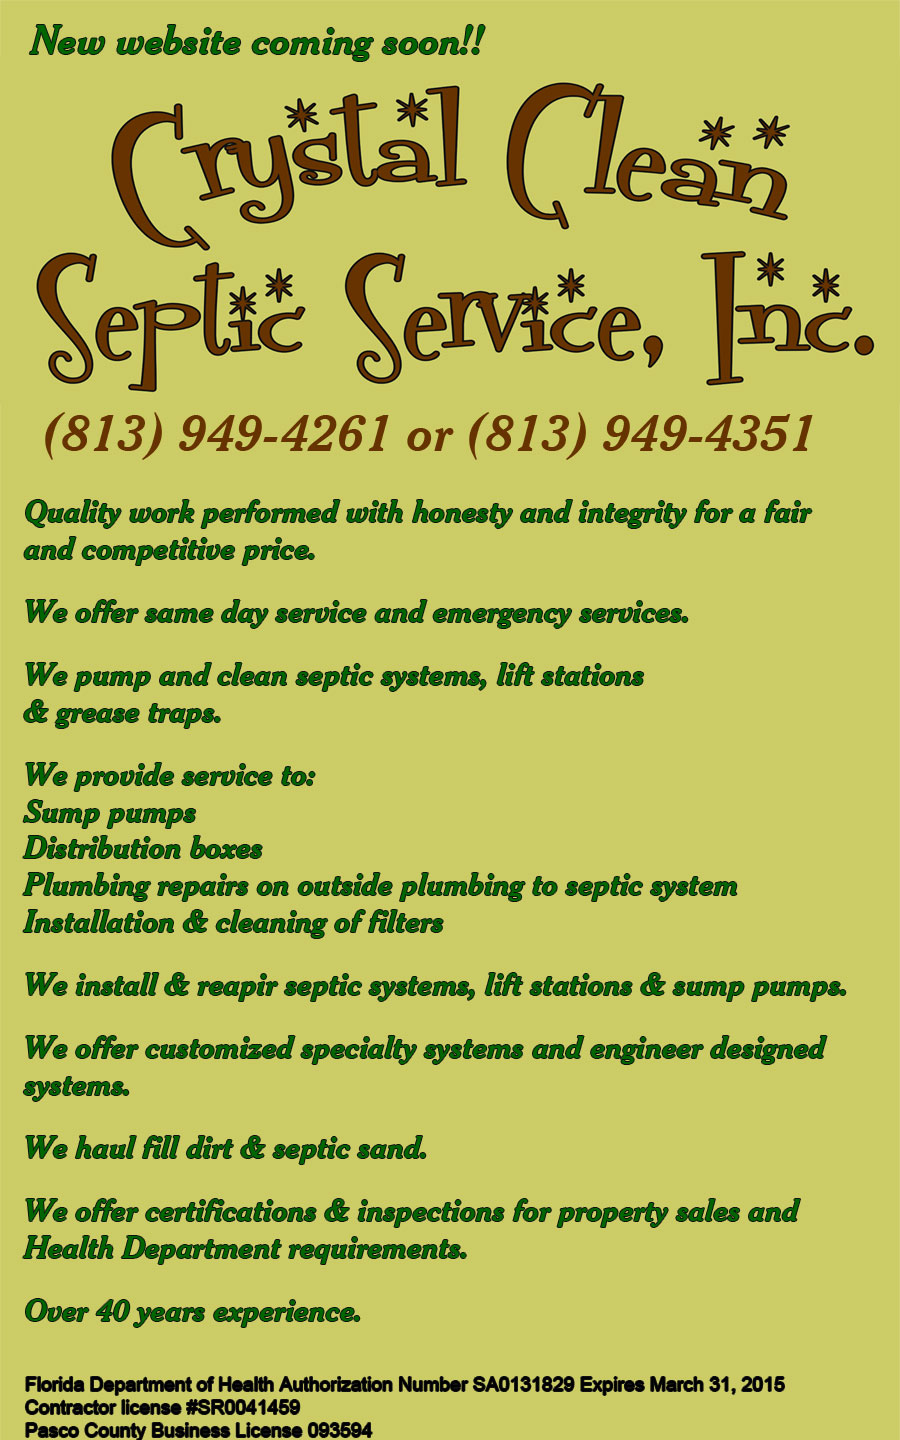 Crystal Clean Septic Service, Inc